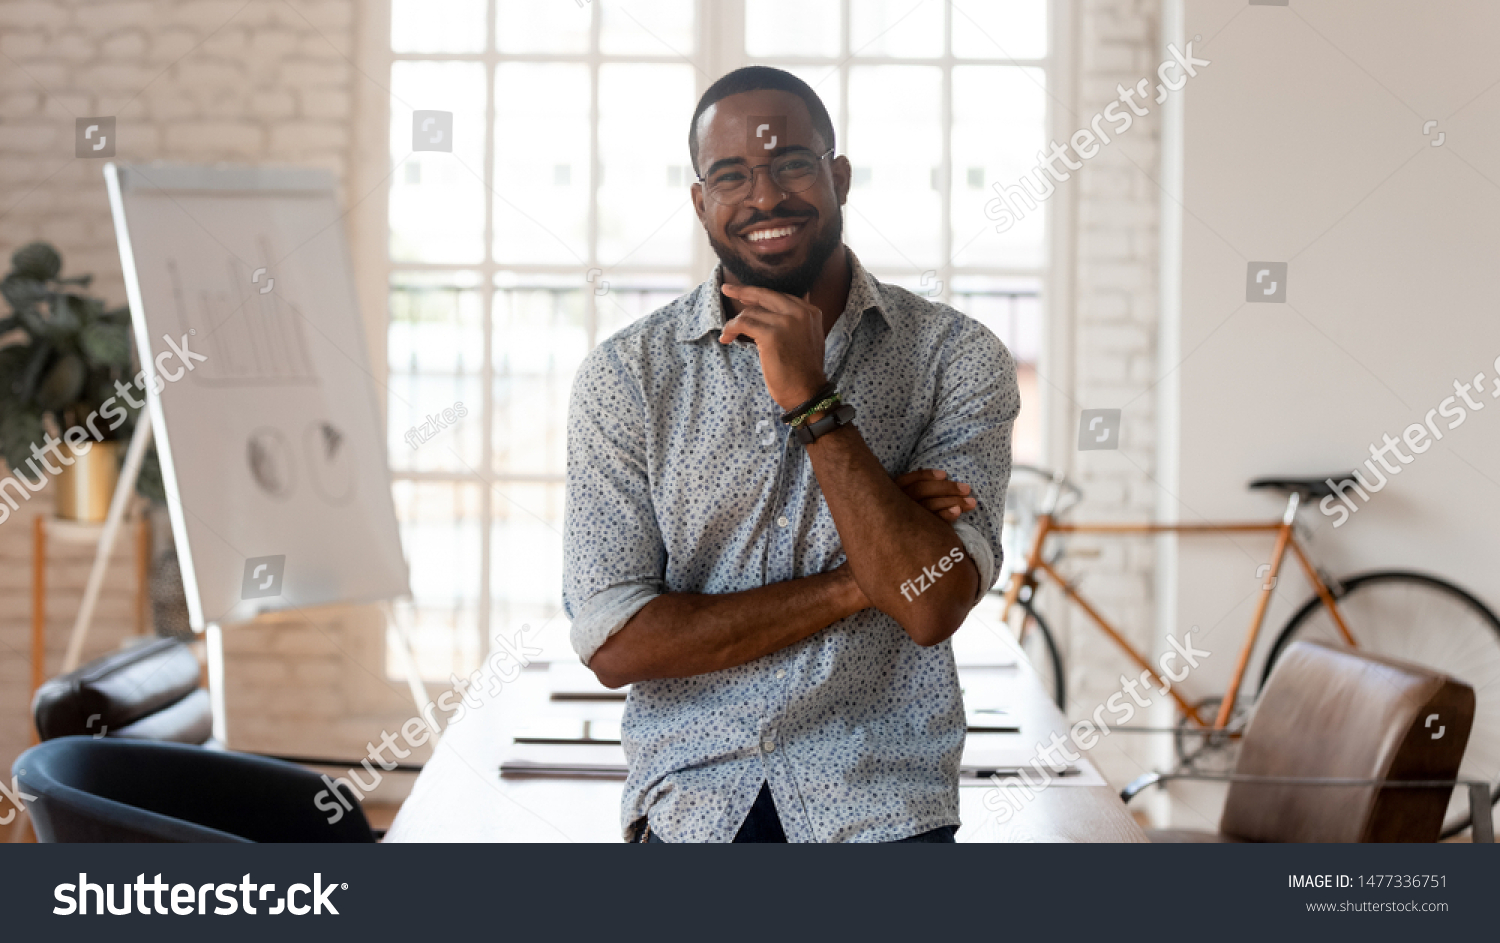 Happy african american businessman entrepreneur startup owner stand in modern office looking at camera, smiling young black designer creative occupation person posing in work space, business portrait #1477336751